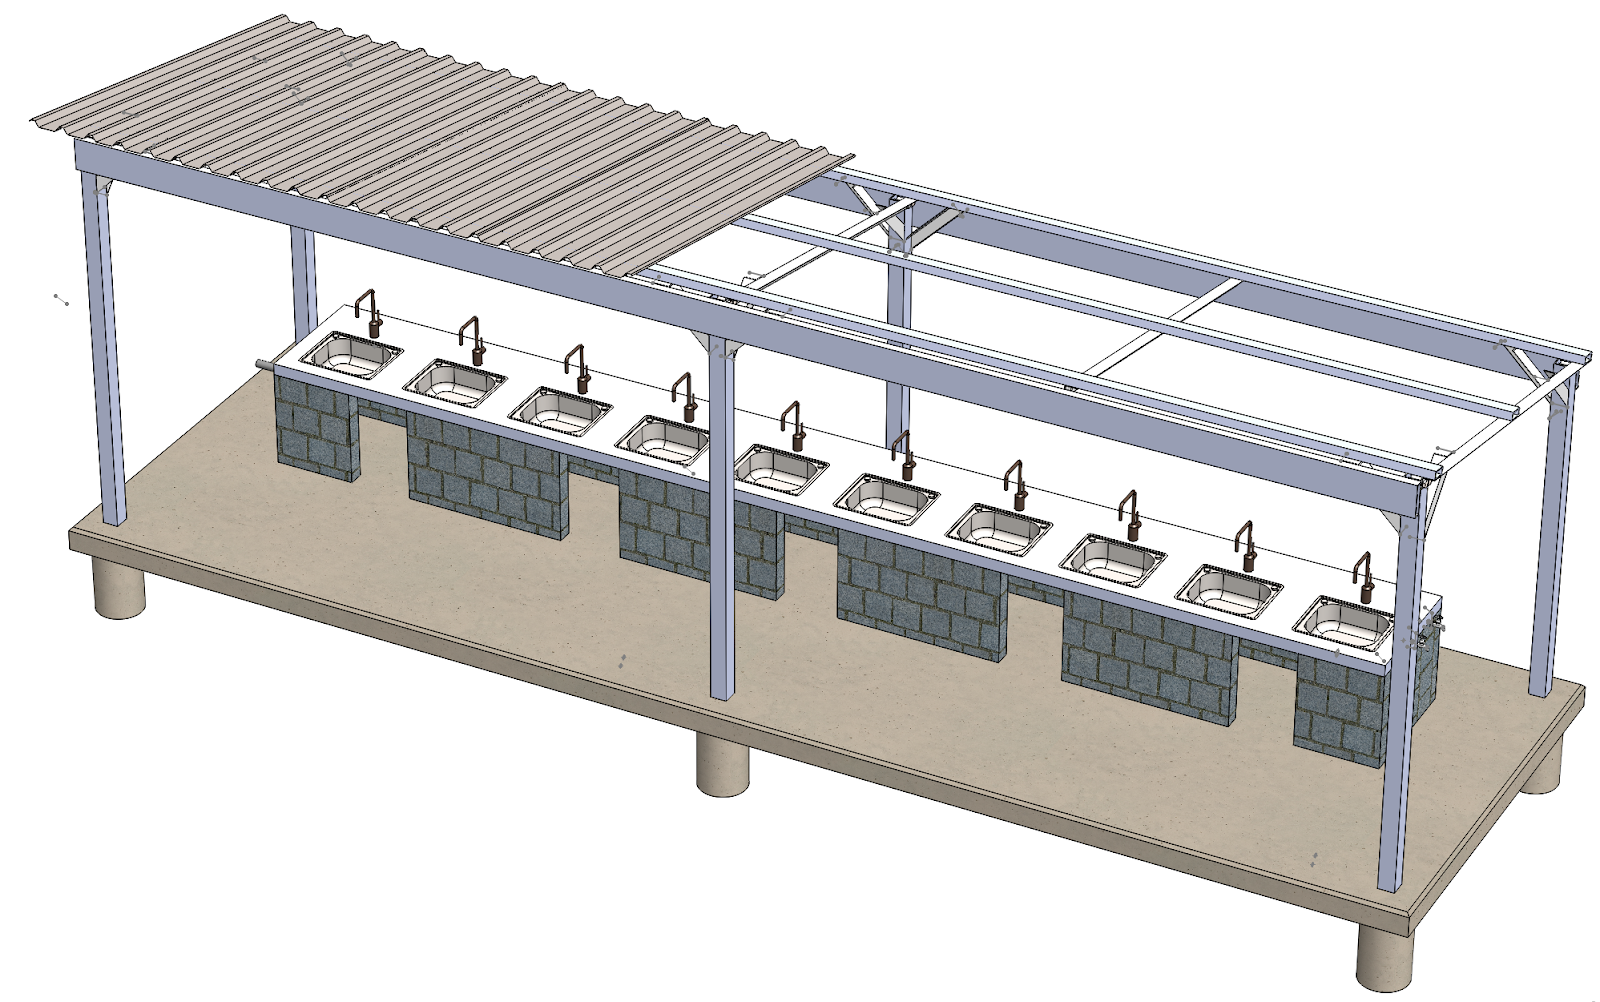 Here is a 3-D rendering of our sink structure design! The corrugated metal roofing will continue across the entirety of the roof; it is partially removed from the drawing in order to display the structural design of the roof structure.